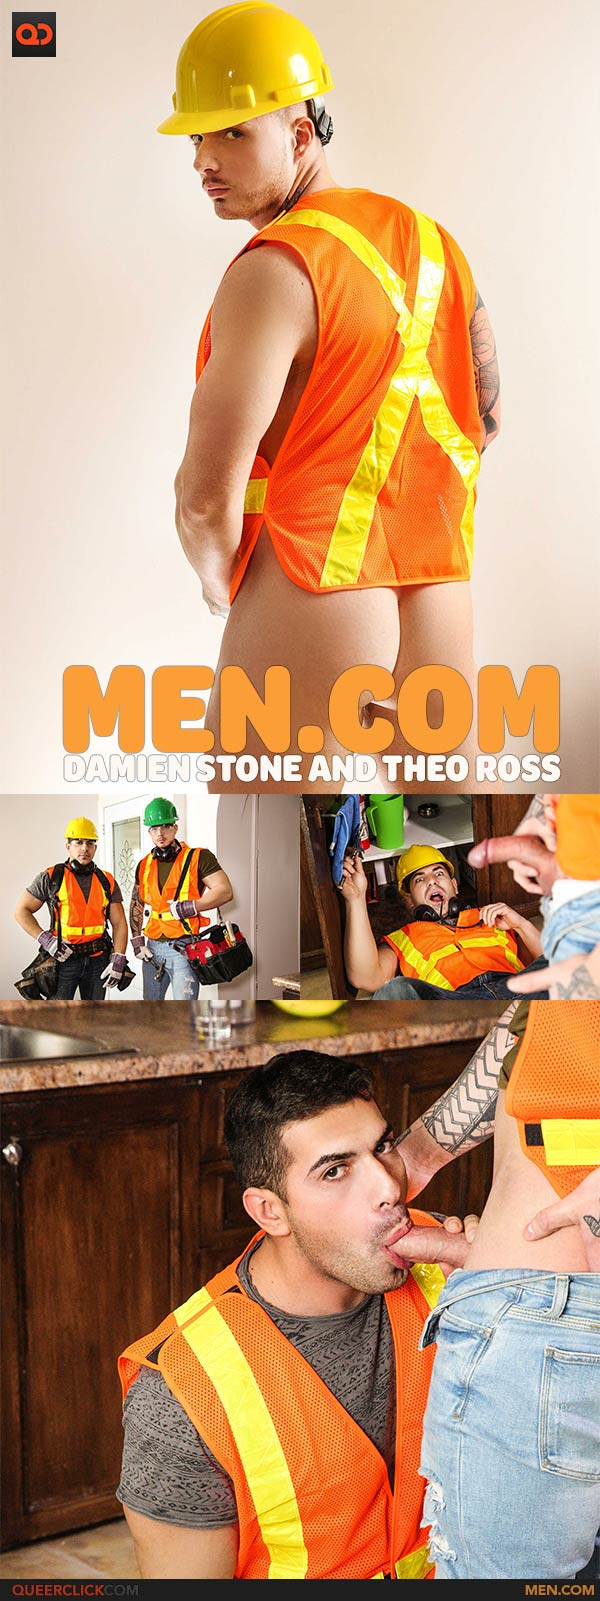 Men.com: Damien Stone and Theo Ross